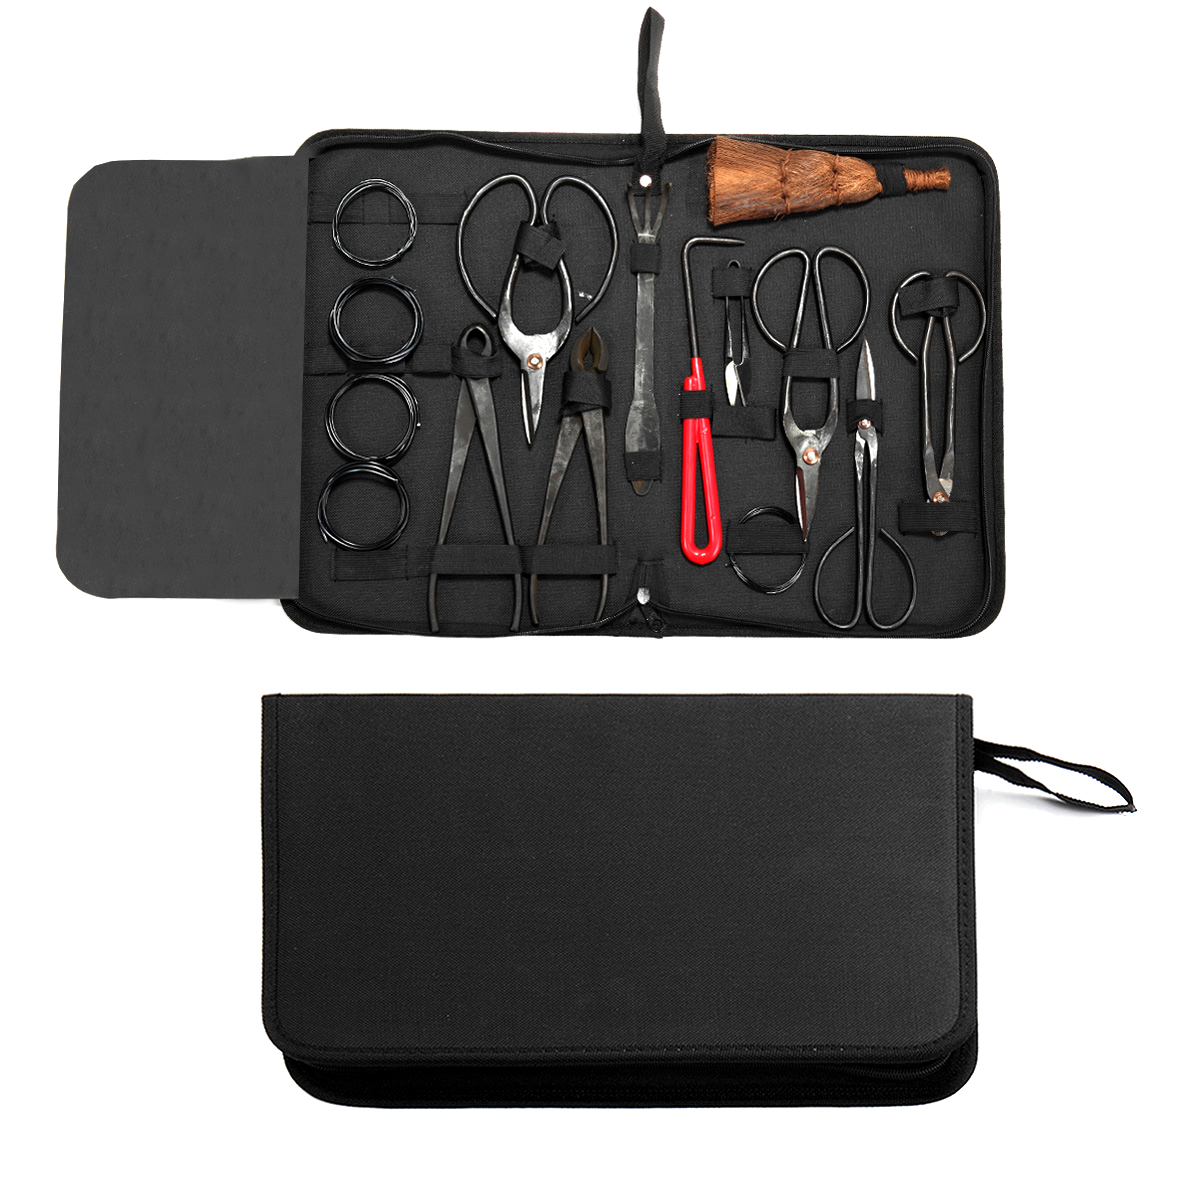 10 Pcs Bonsai Tool Kit Carbon Steel Garden Hand Pruning Branch Cutter Scissors w/ Tool Roll Wire and Nylon Case